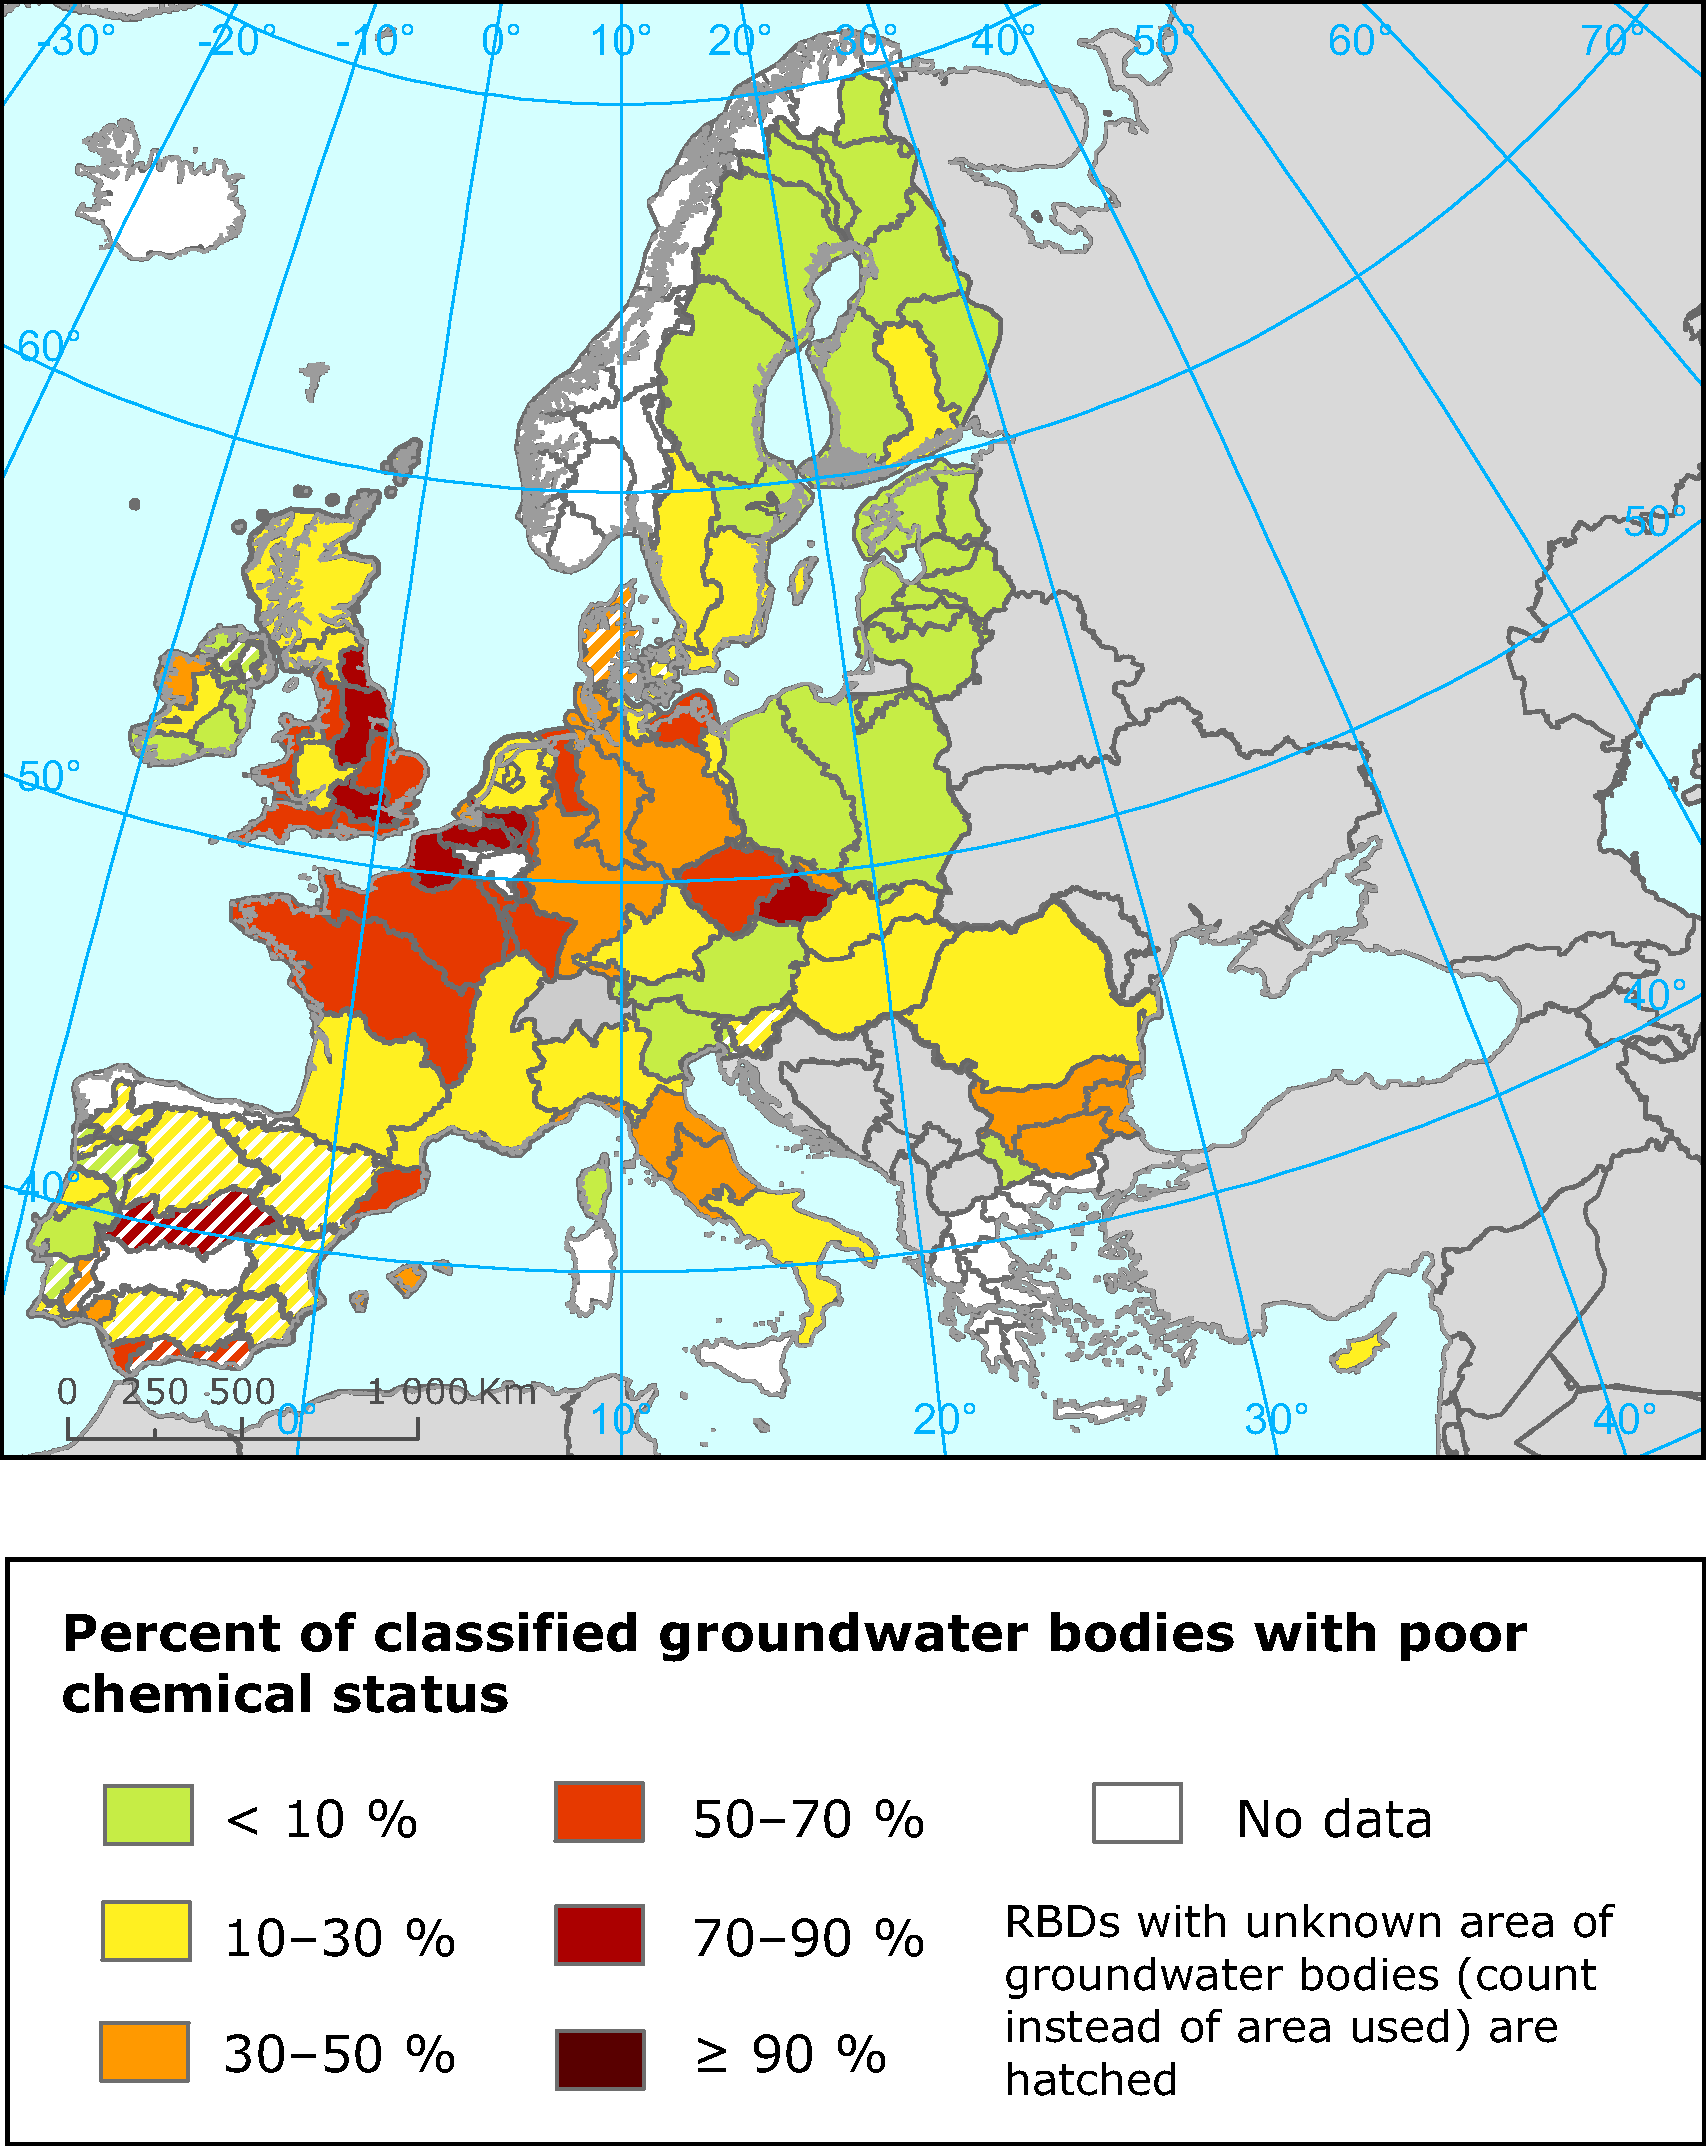 Proportion of classified groundwater bodies in different River Basin Districts in poor chemical status